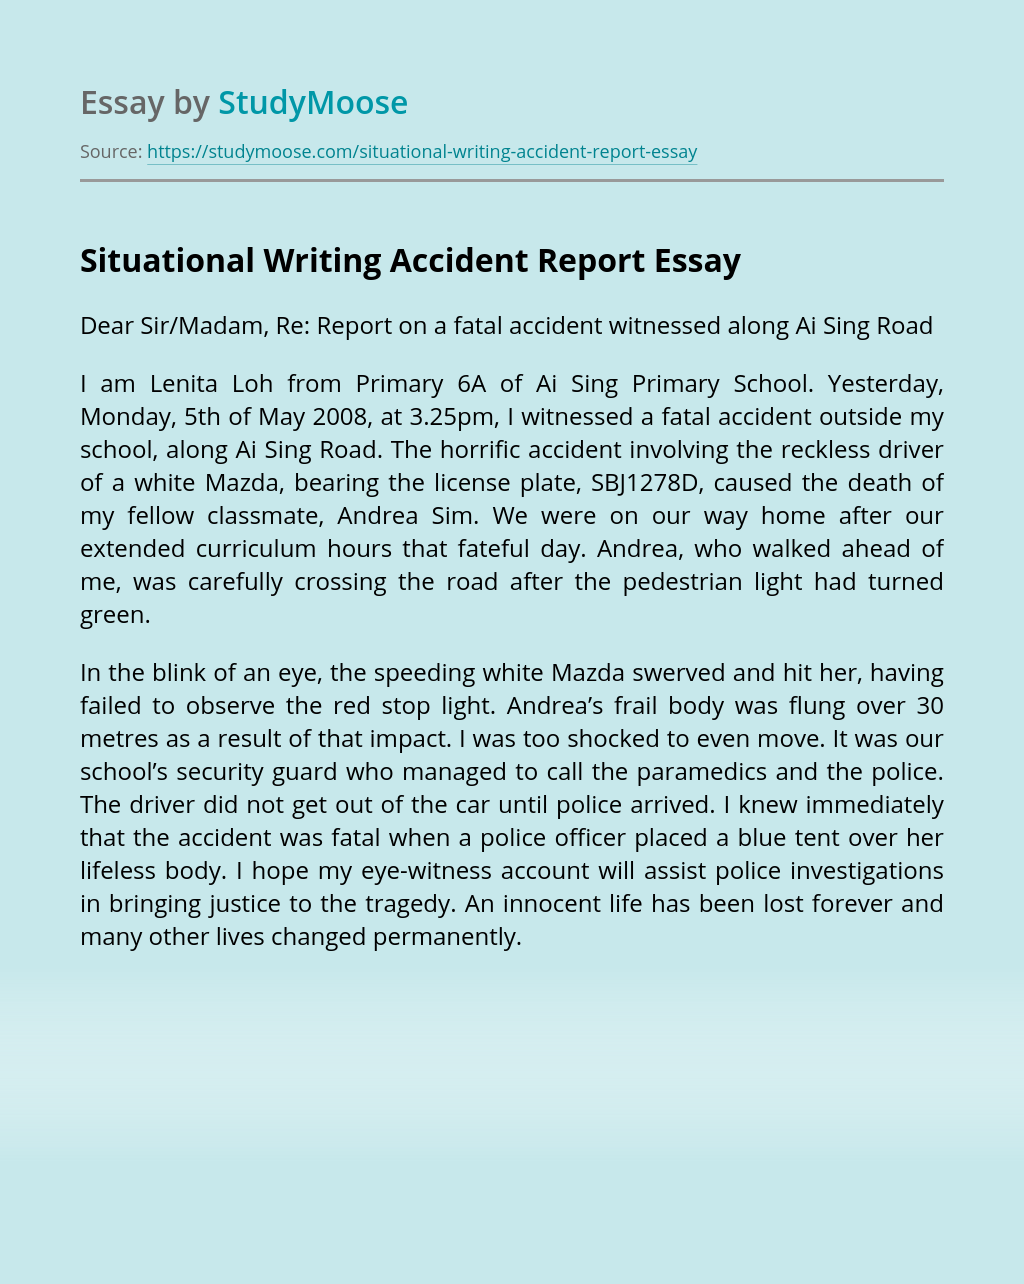 Situational Writing Accident Report